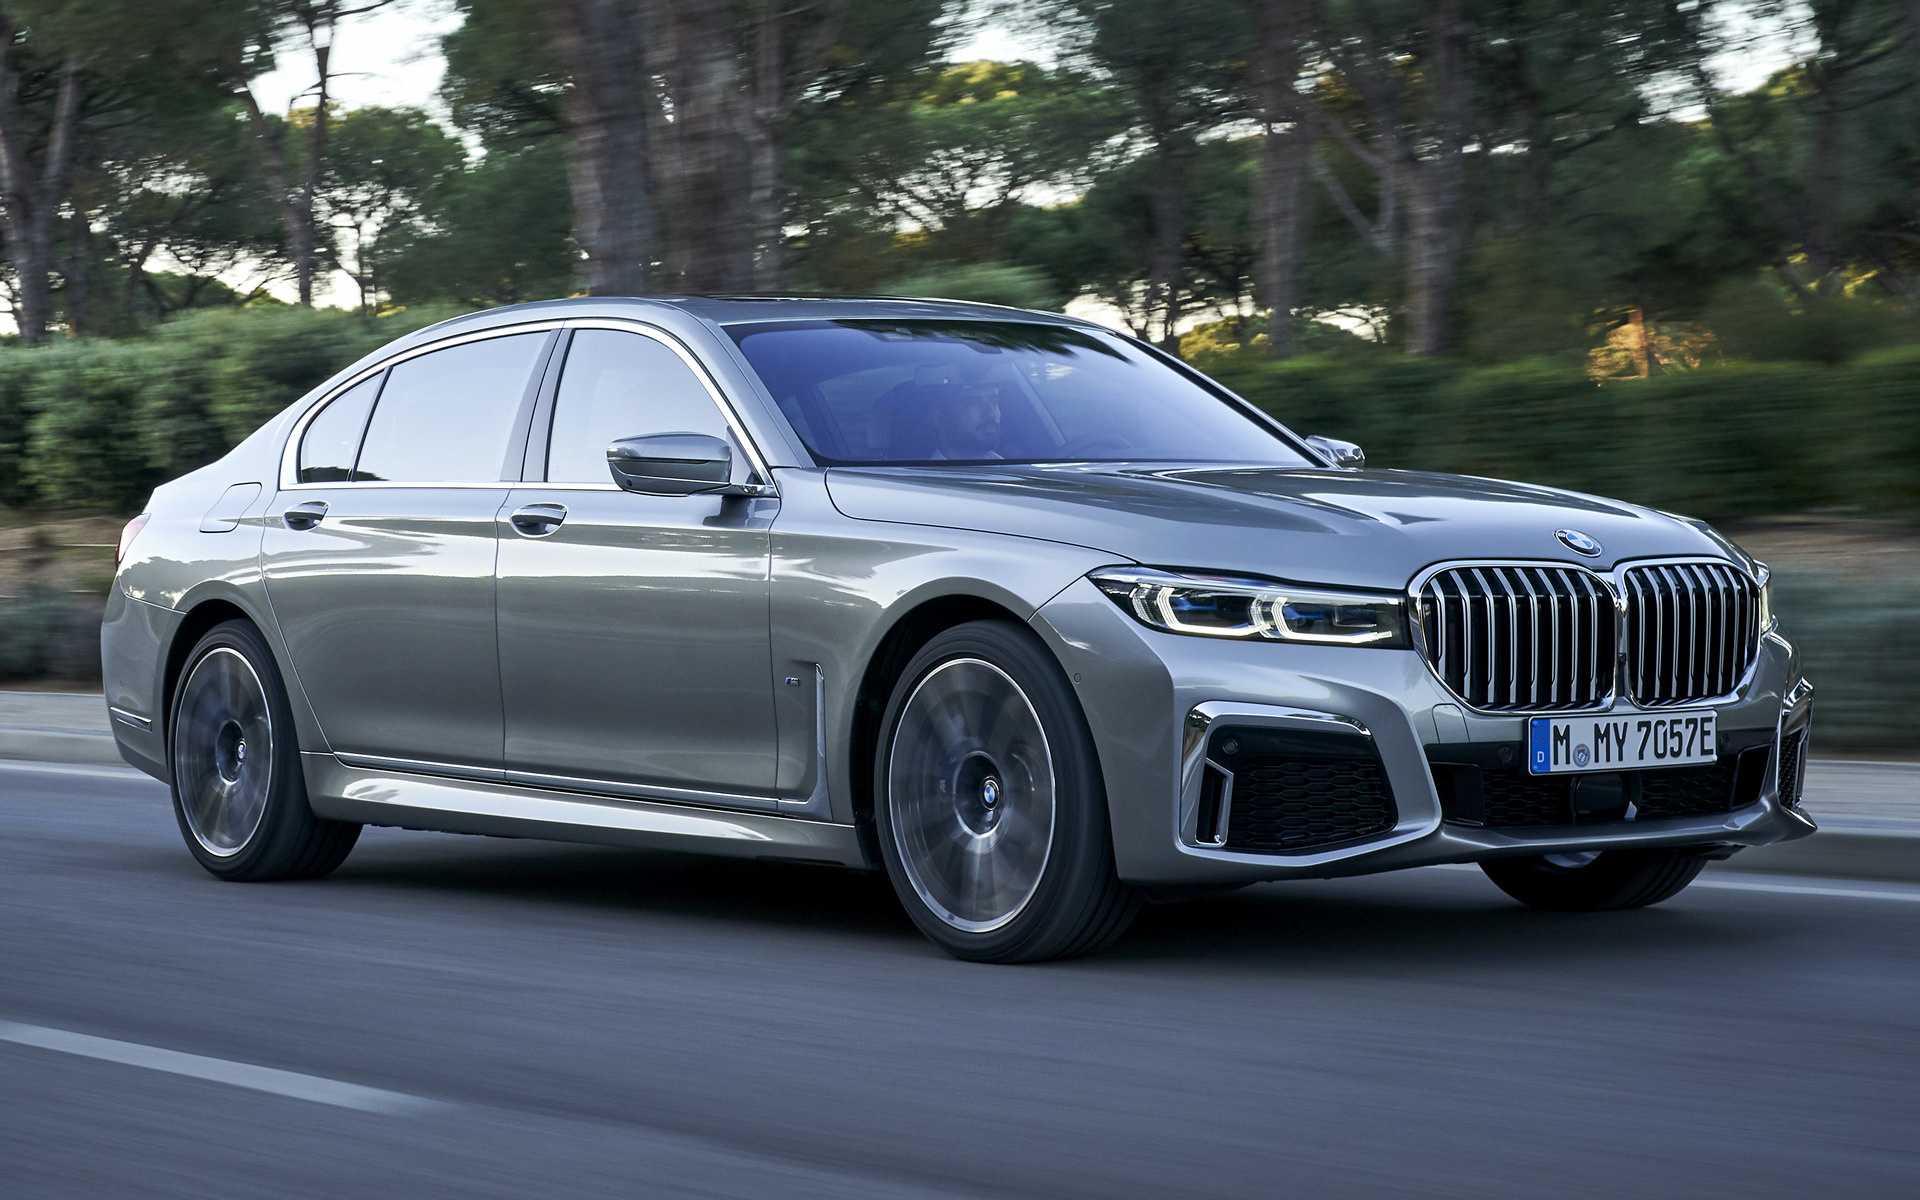 Land Rover Sport >> 2019 BMW 7 Series Plug-In Hybrid M Sport [LWB] - Wallpapers and HD Images | Car Pixel